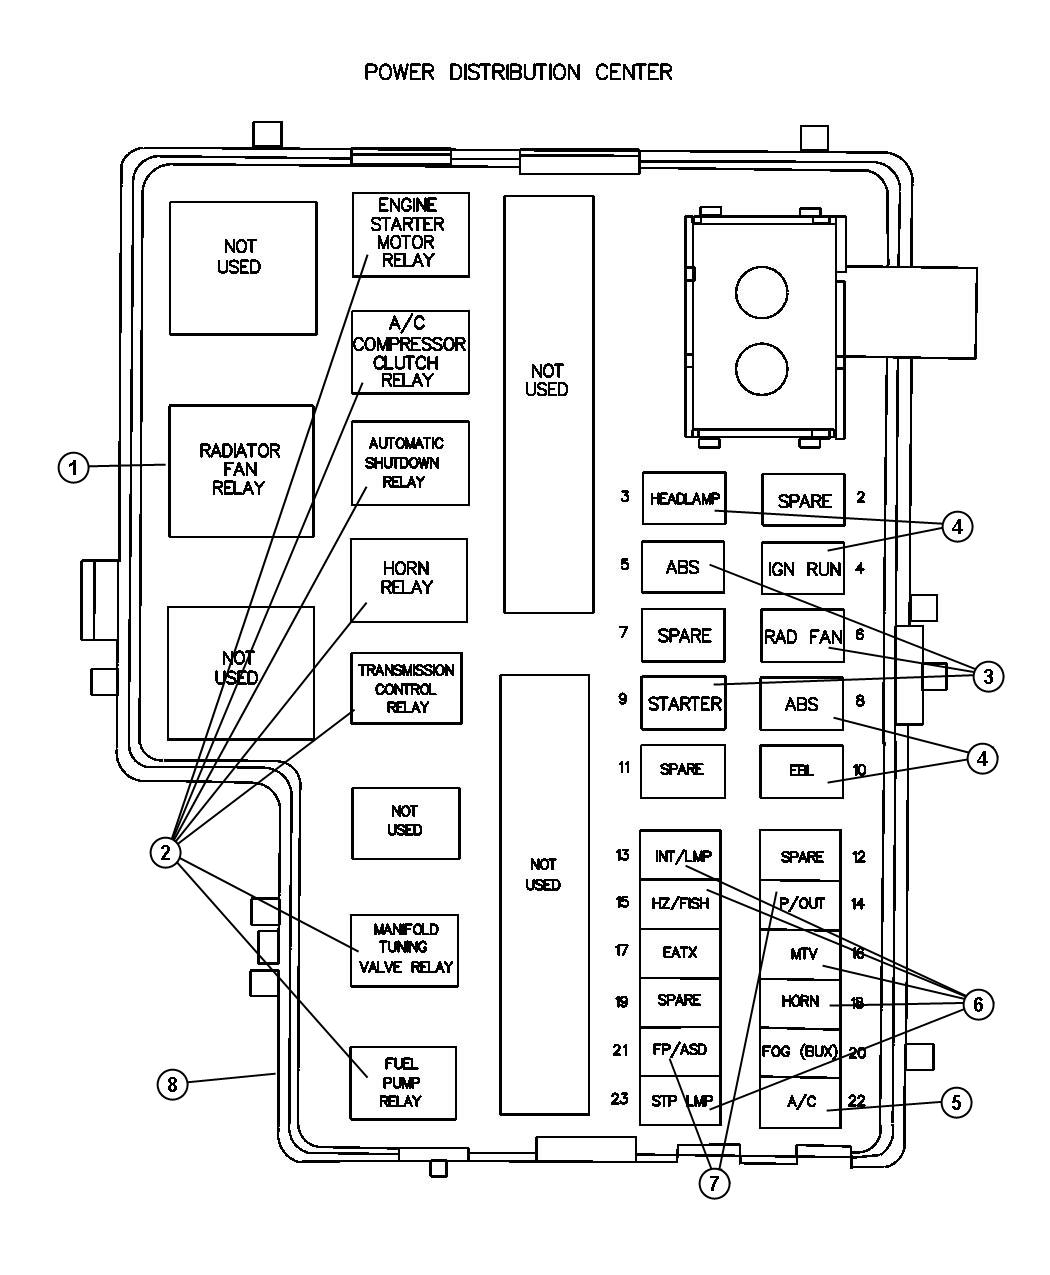 dodge durango factory radio wiring diagram wirdig sebring fuse box diagram additionally 1999 dodge neon fuse box diagram